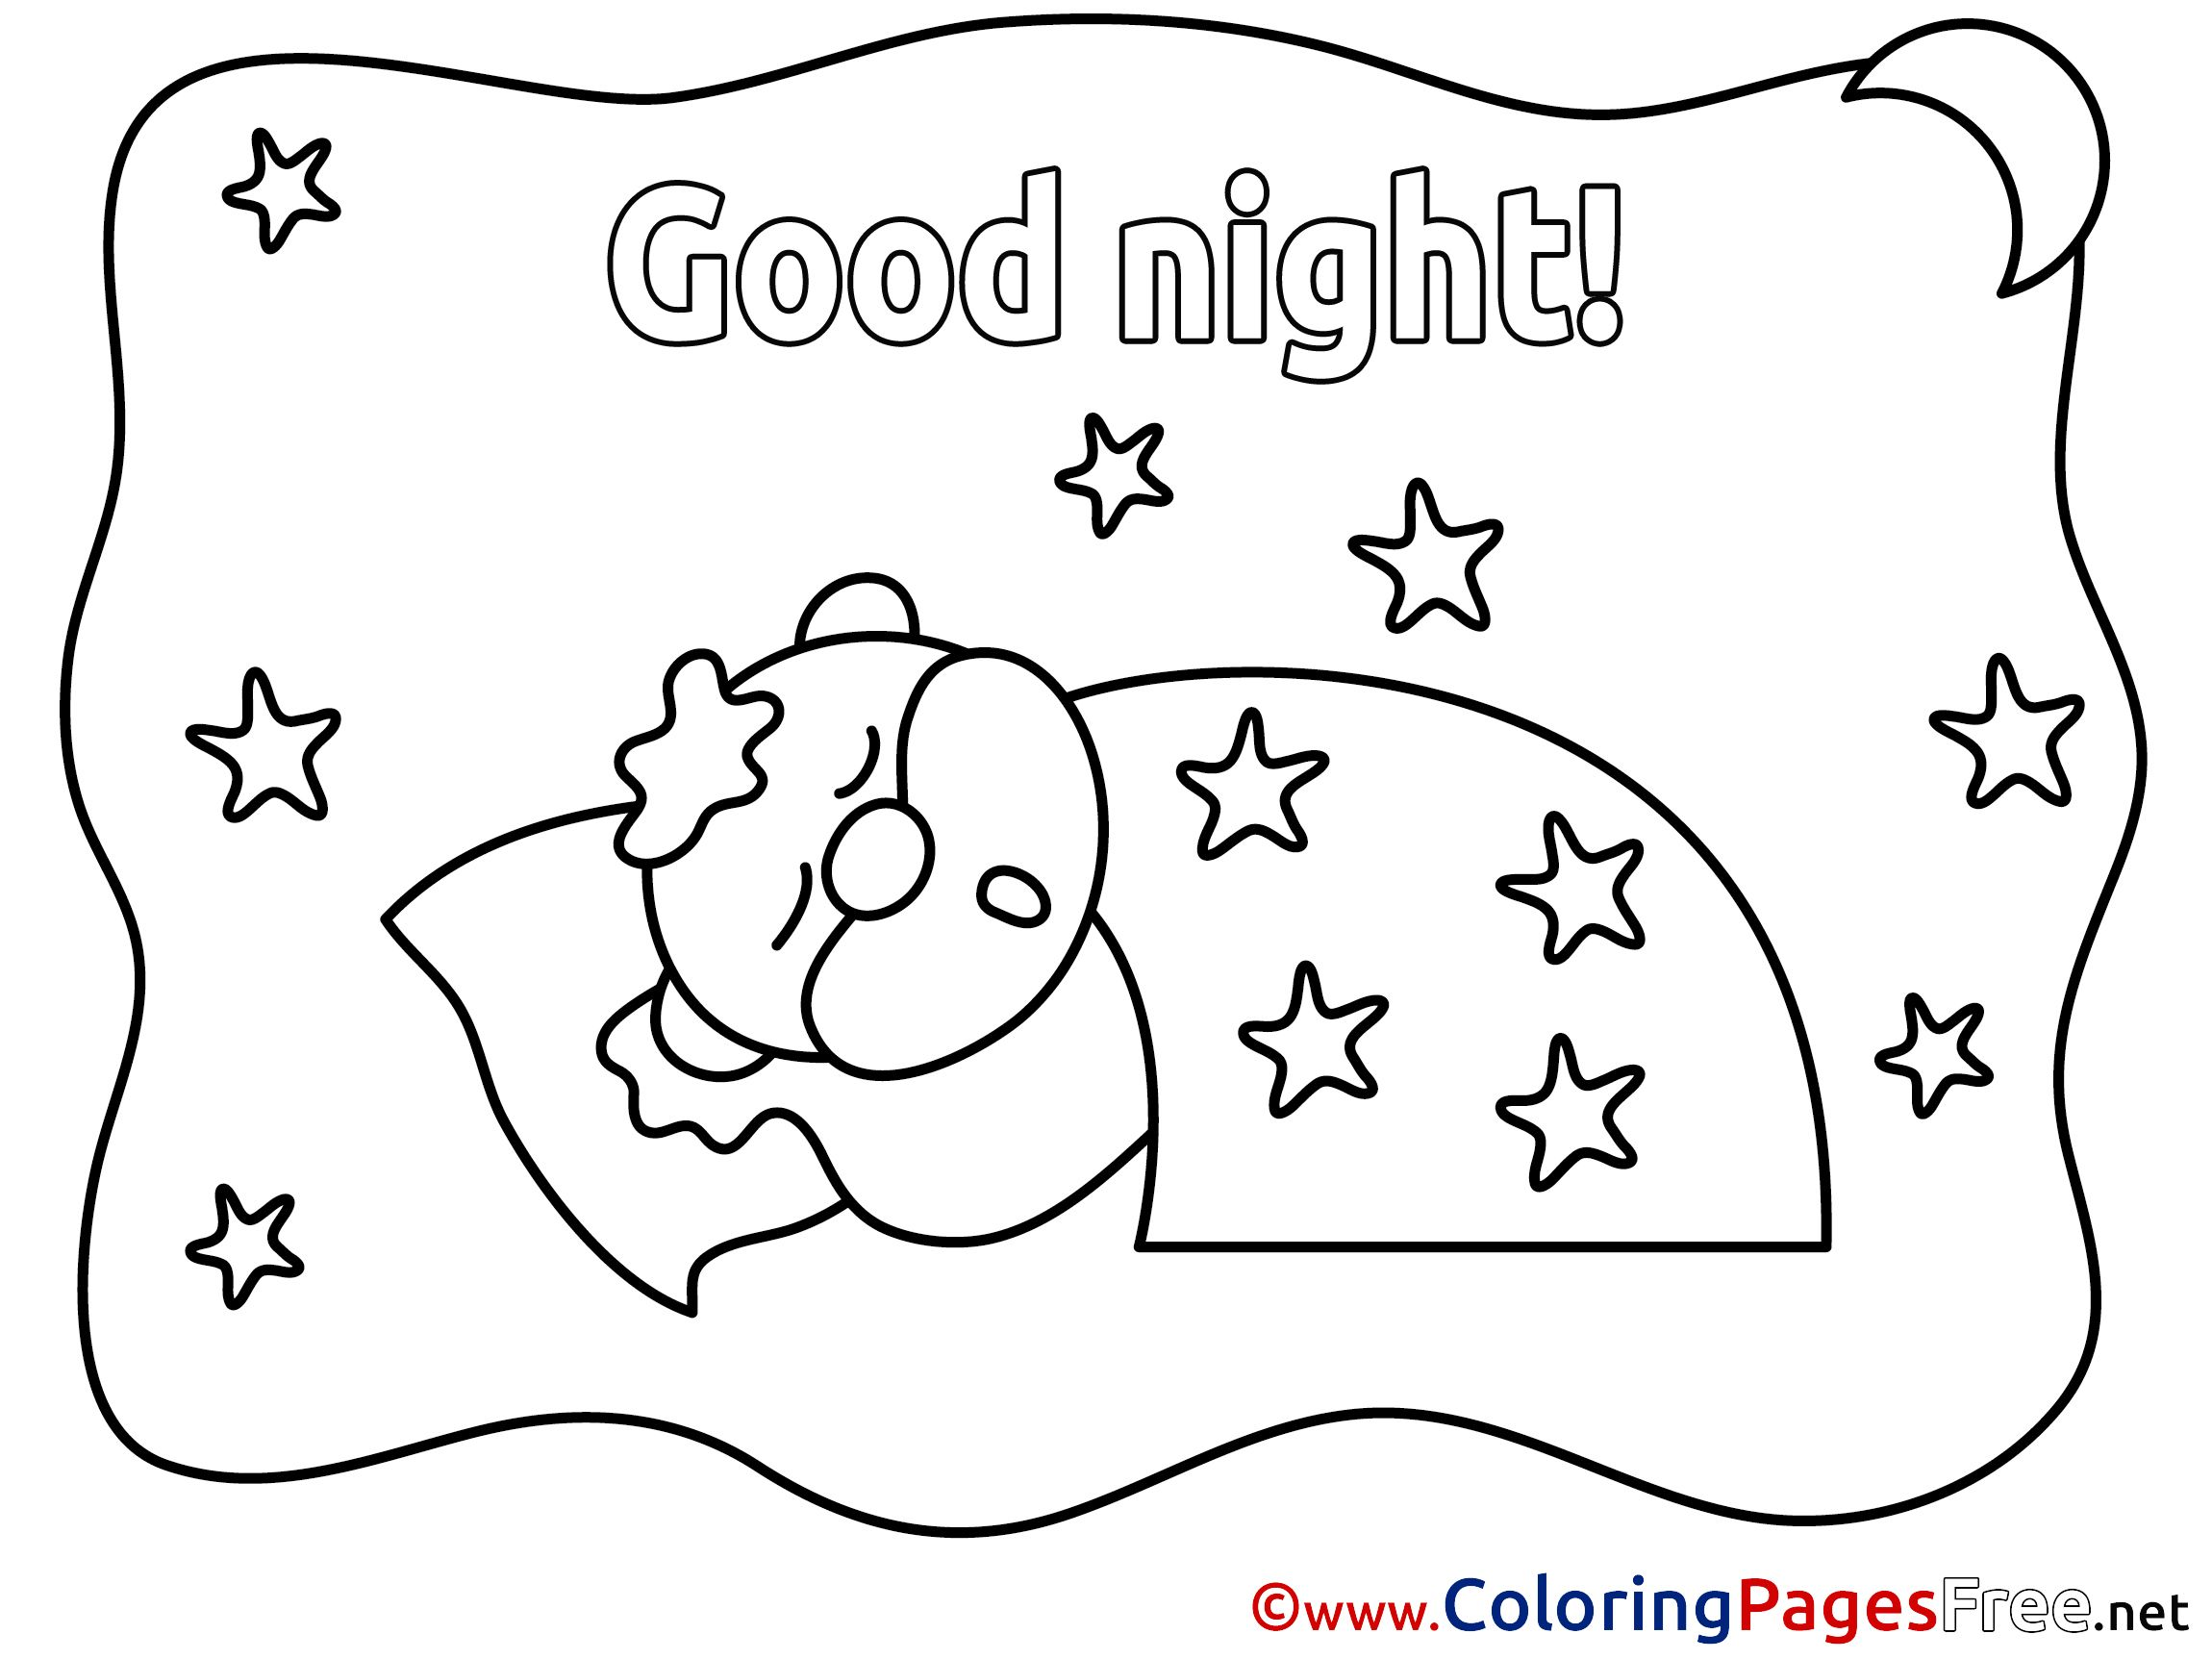 Good night coloring pages beneath star quilt